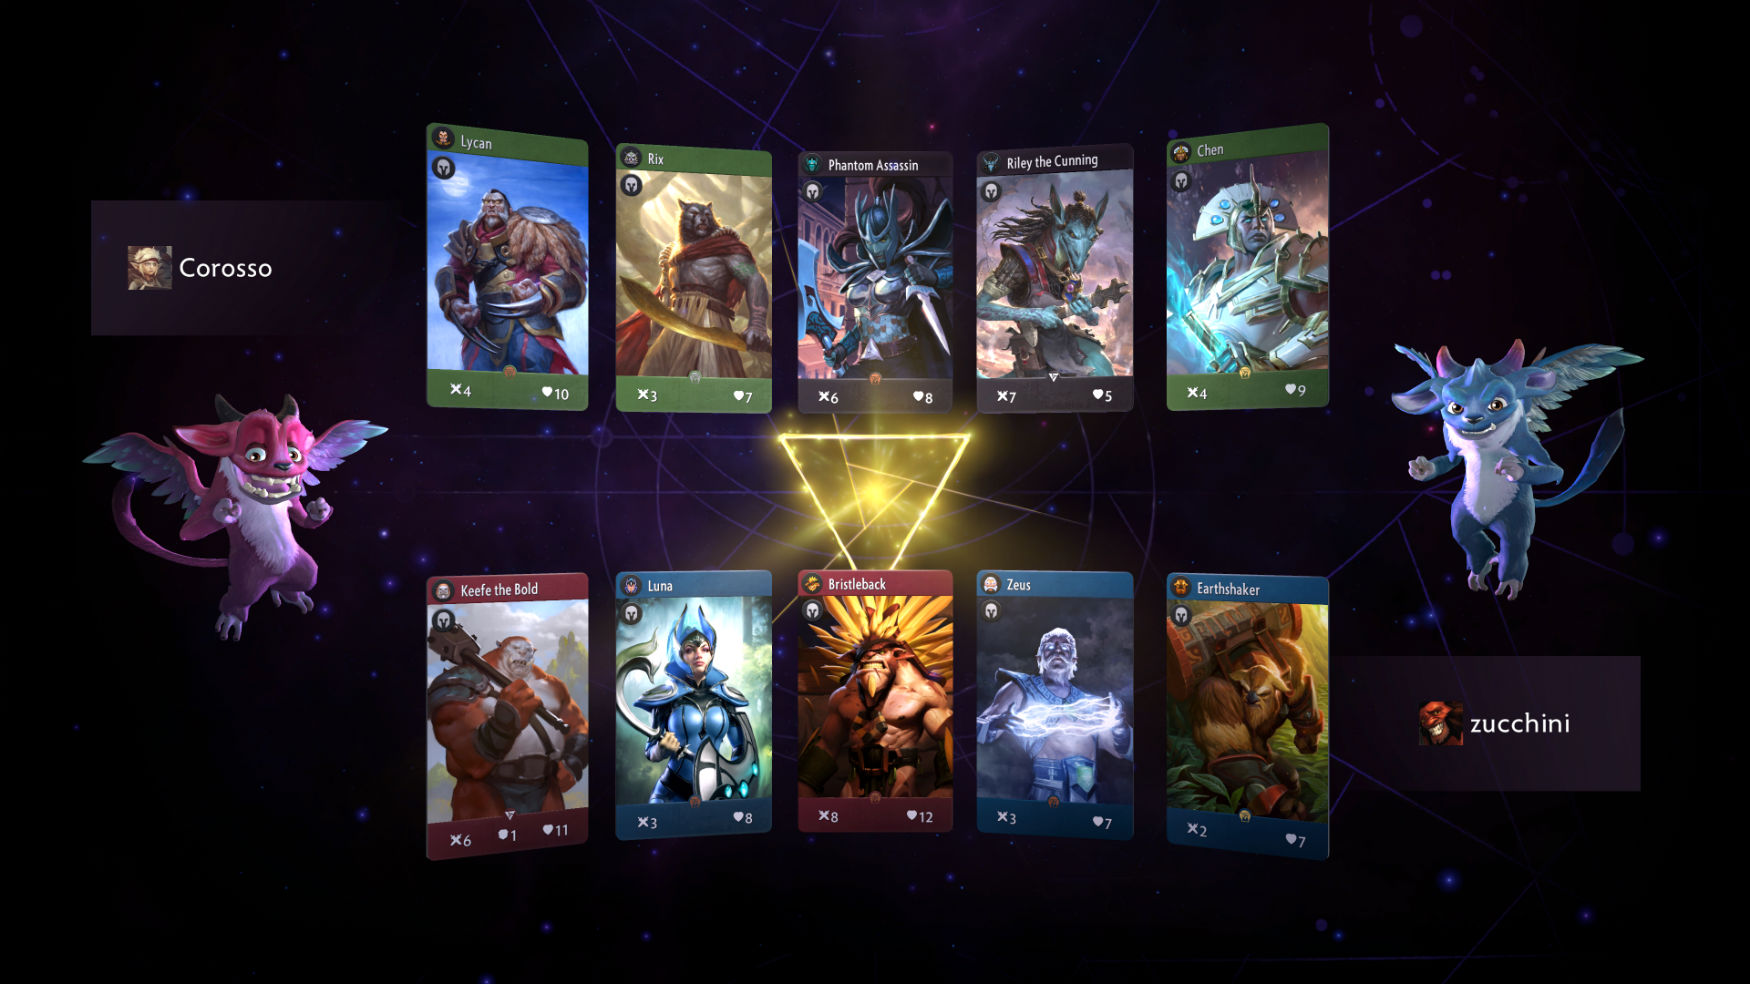 Valve: Creating Artifact is not a